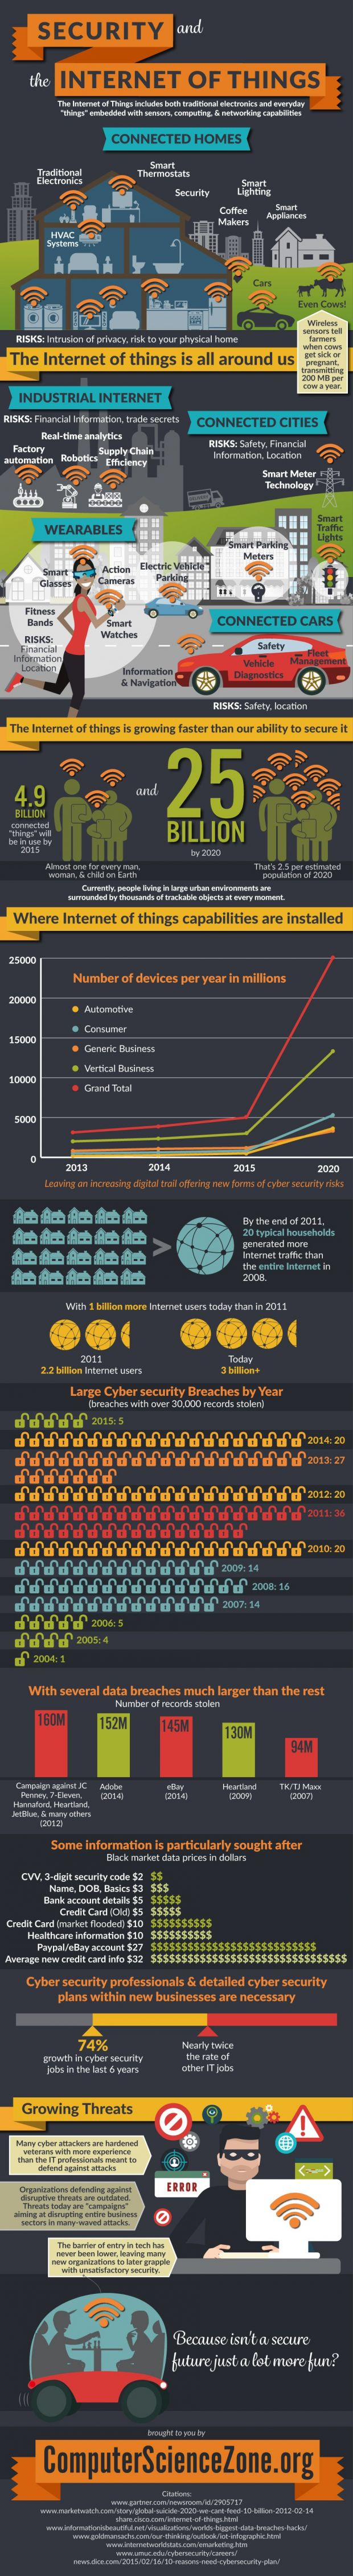 infographic-security-and-the-internet-of-things-491568-2 (1)